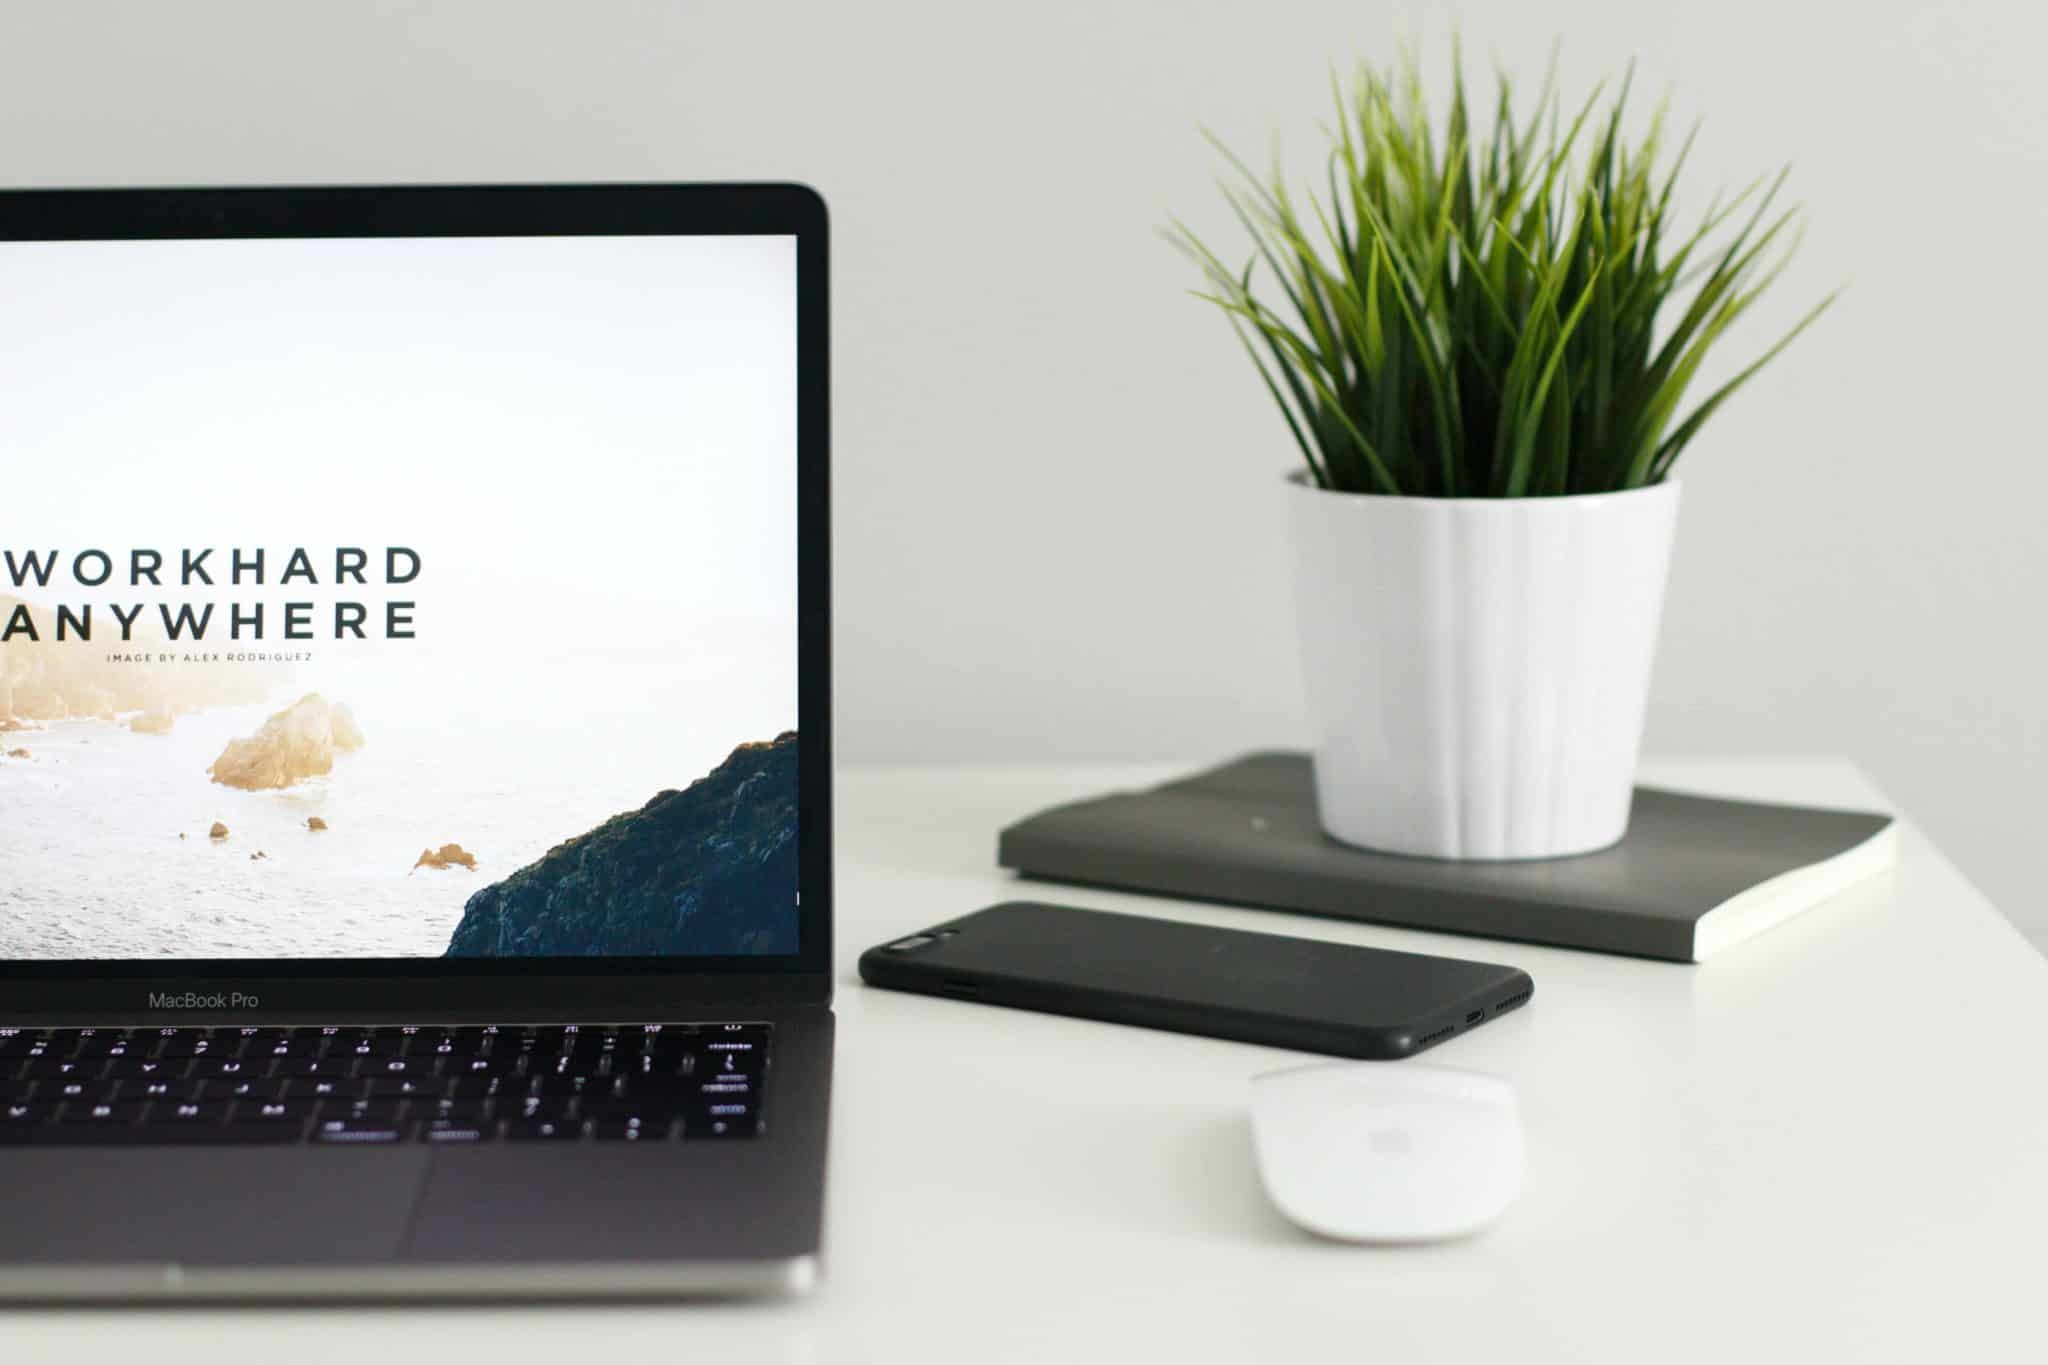 A laptop with web design and seo services